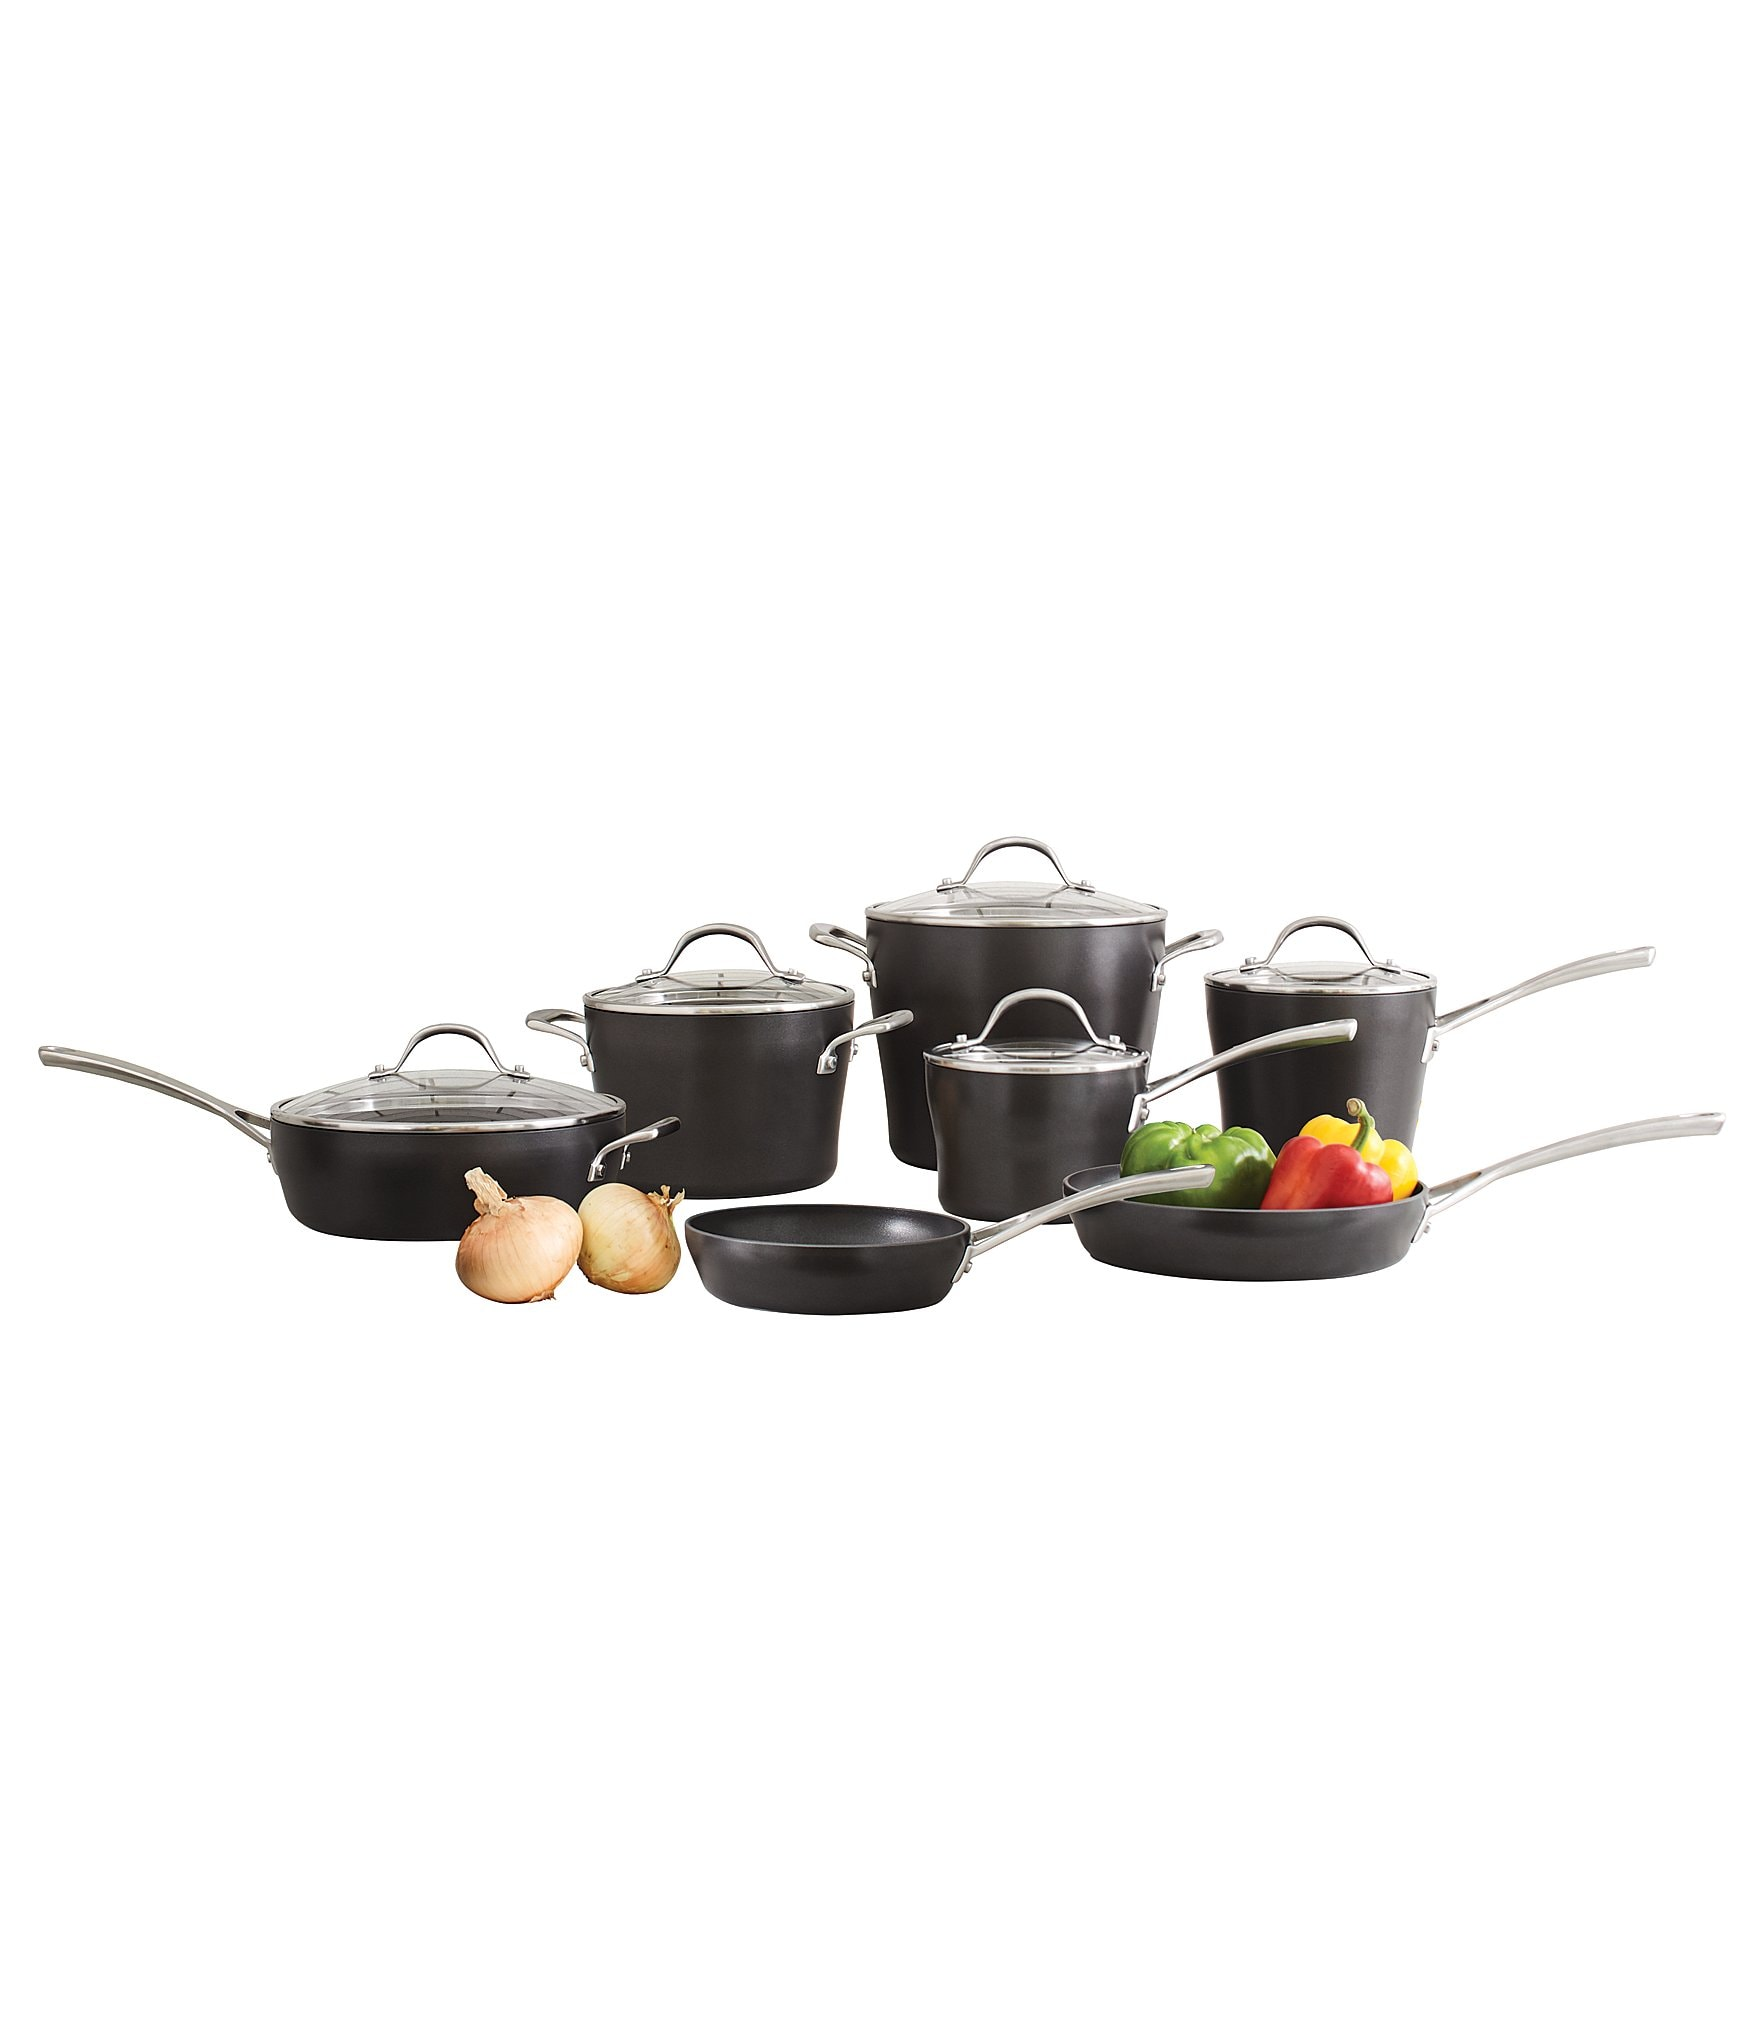 Southern Living Hard Anodized Aluminum 12 Piece Cookware